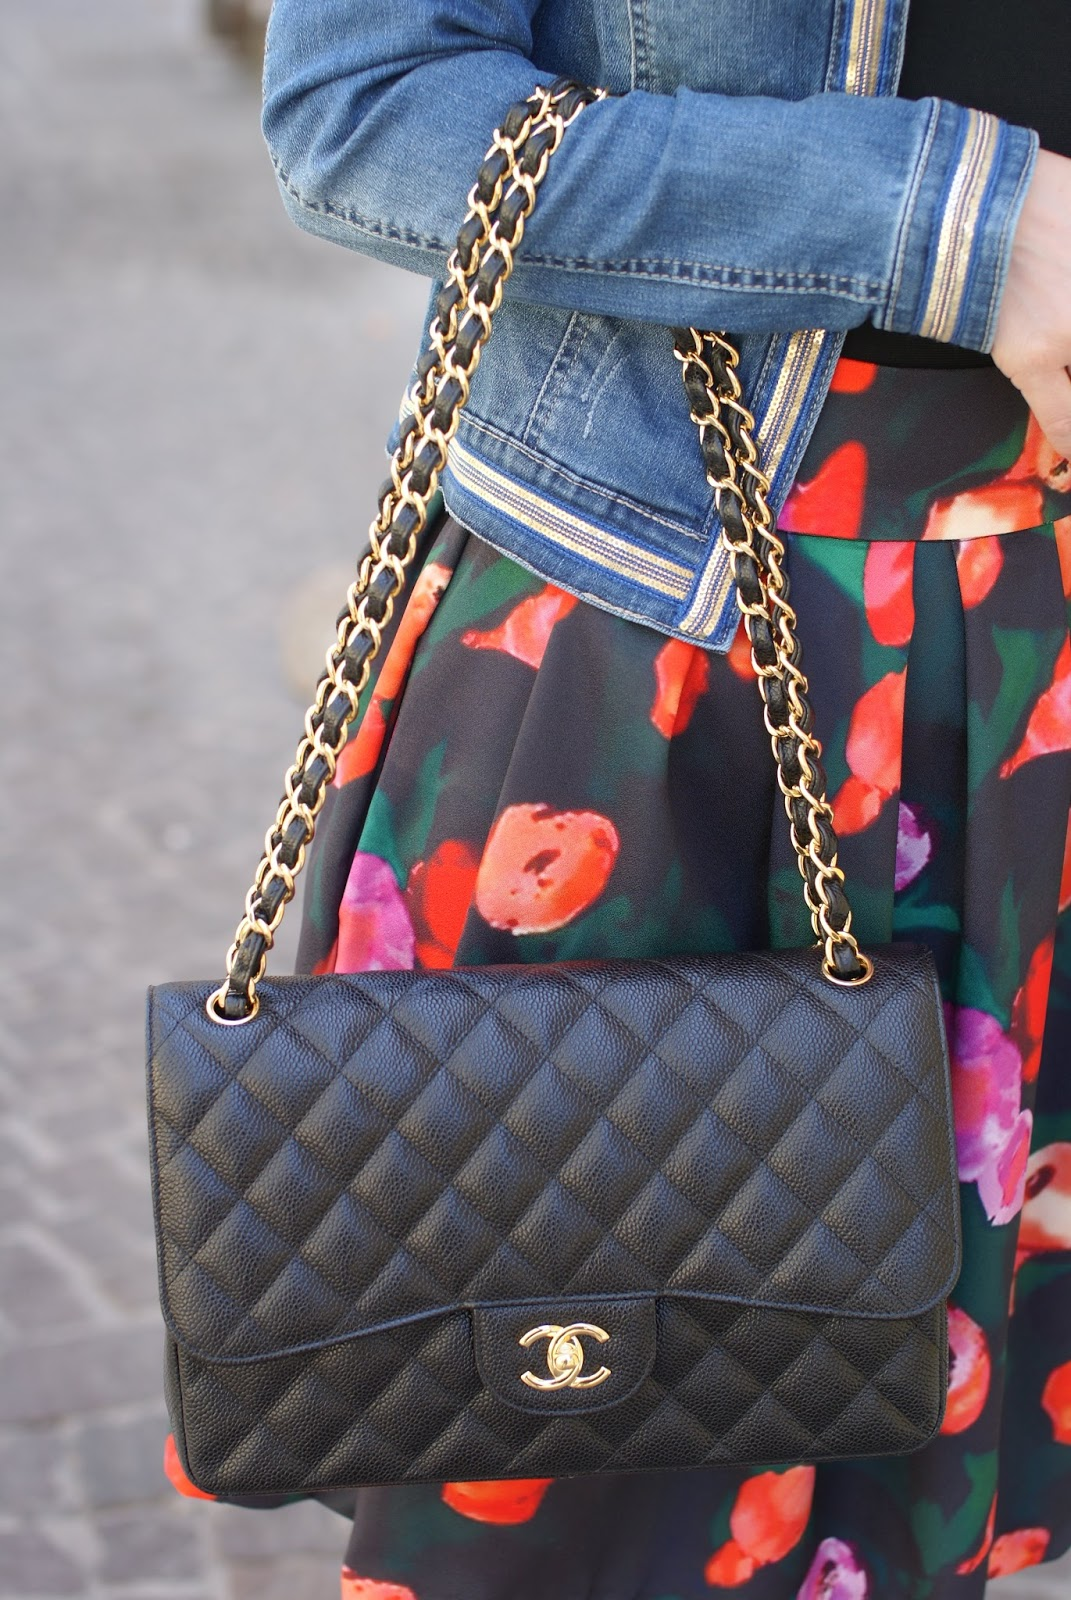 Chanel 2.55 classic flap caviar leather on Fashion and Cookies fashion blog, fashion blogger style